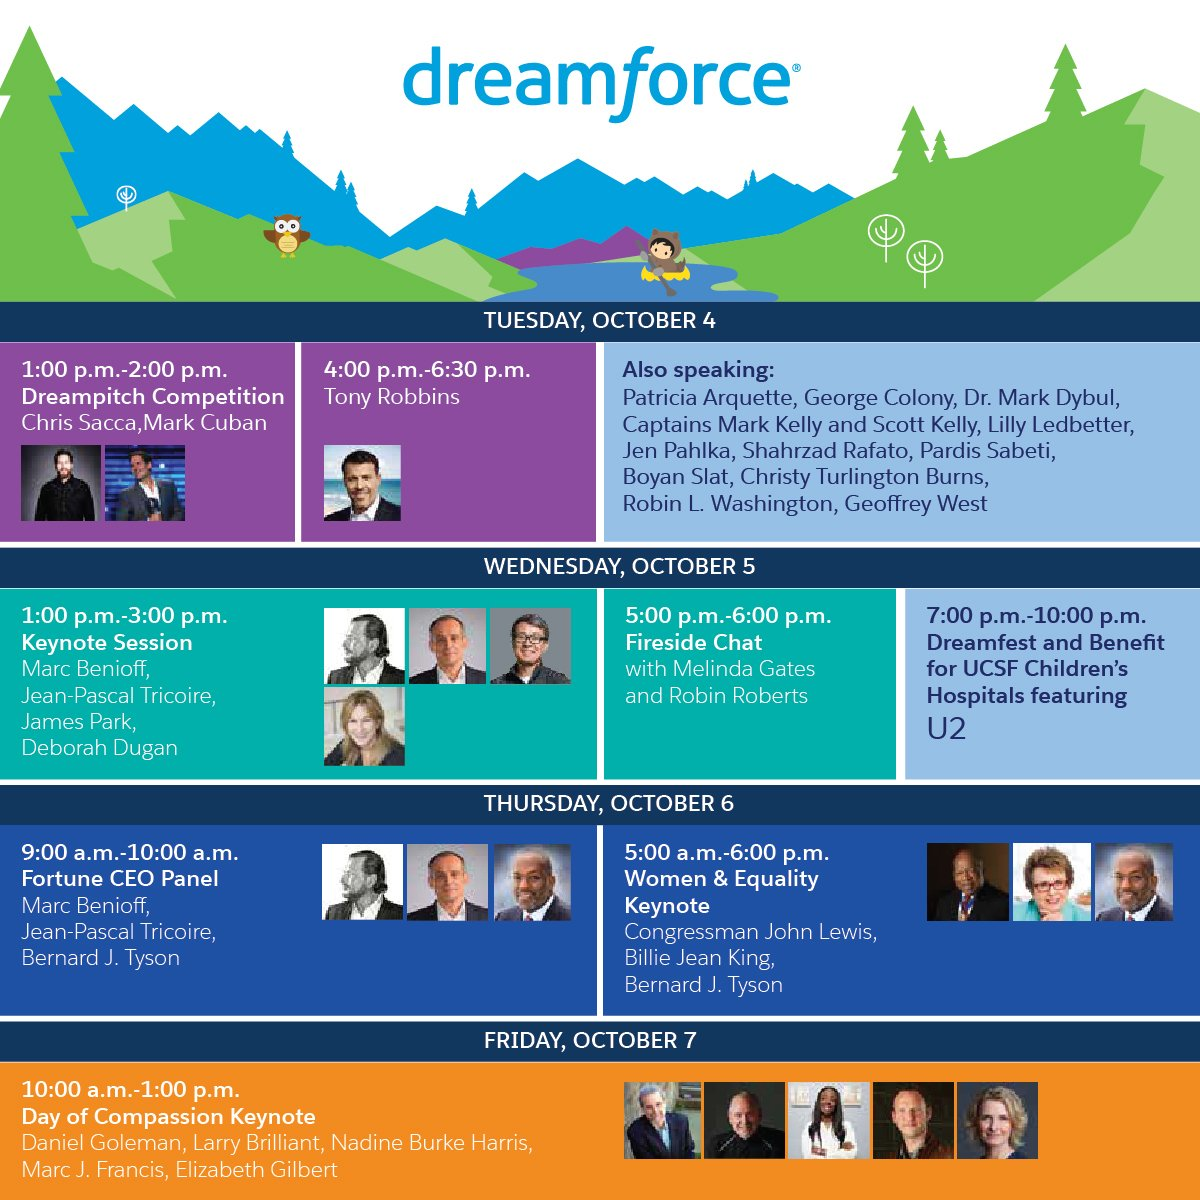 Watch the biggest moments of #DF16 on SalesforceLIVE!